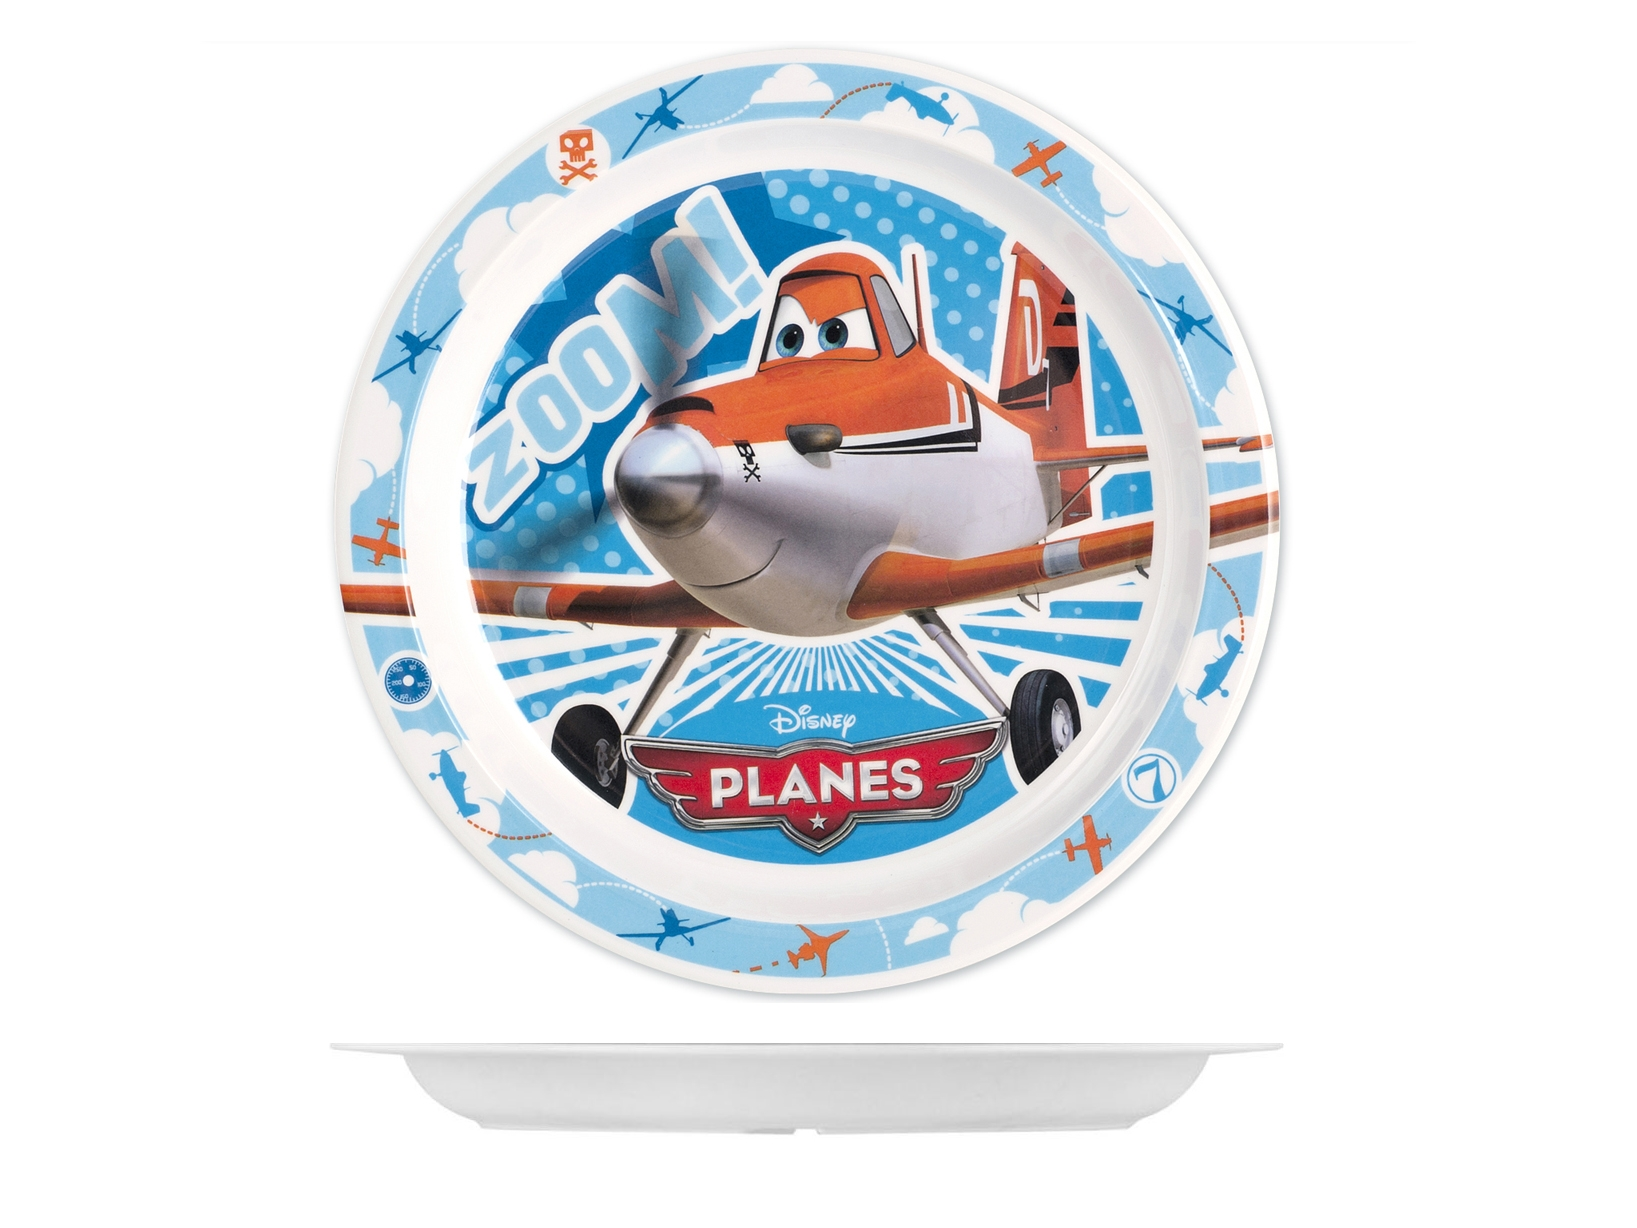 Acquista Piatto Melamina Disney Planes 17528345 | Glooke.com